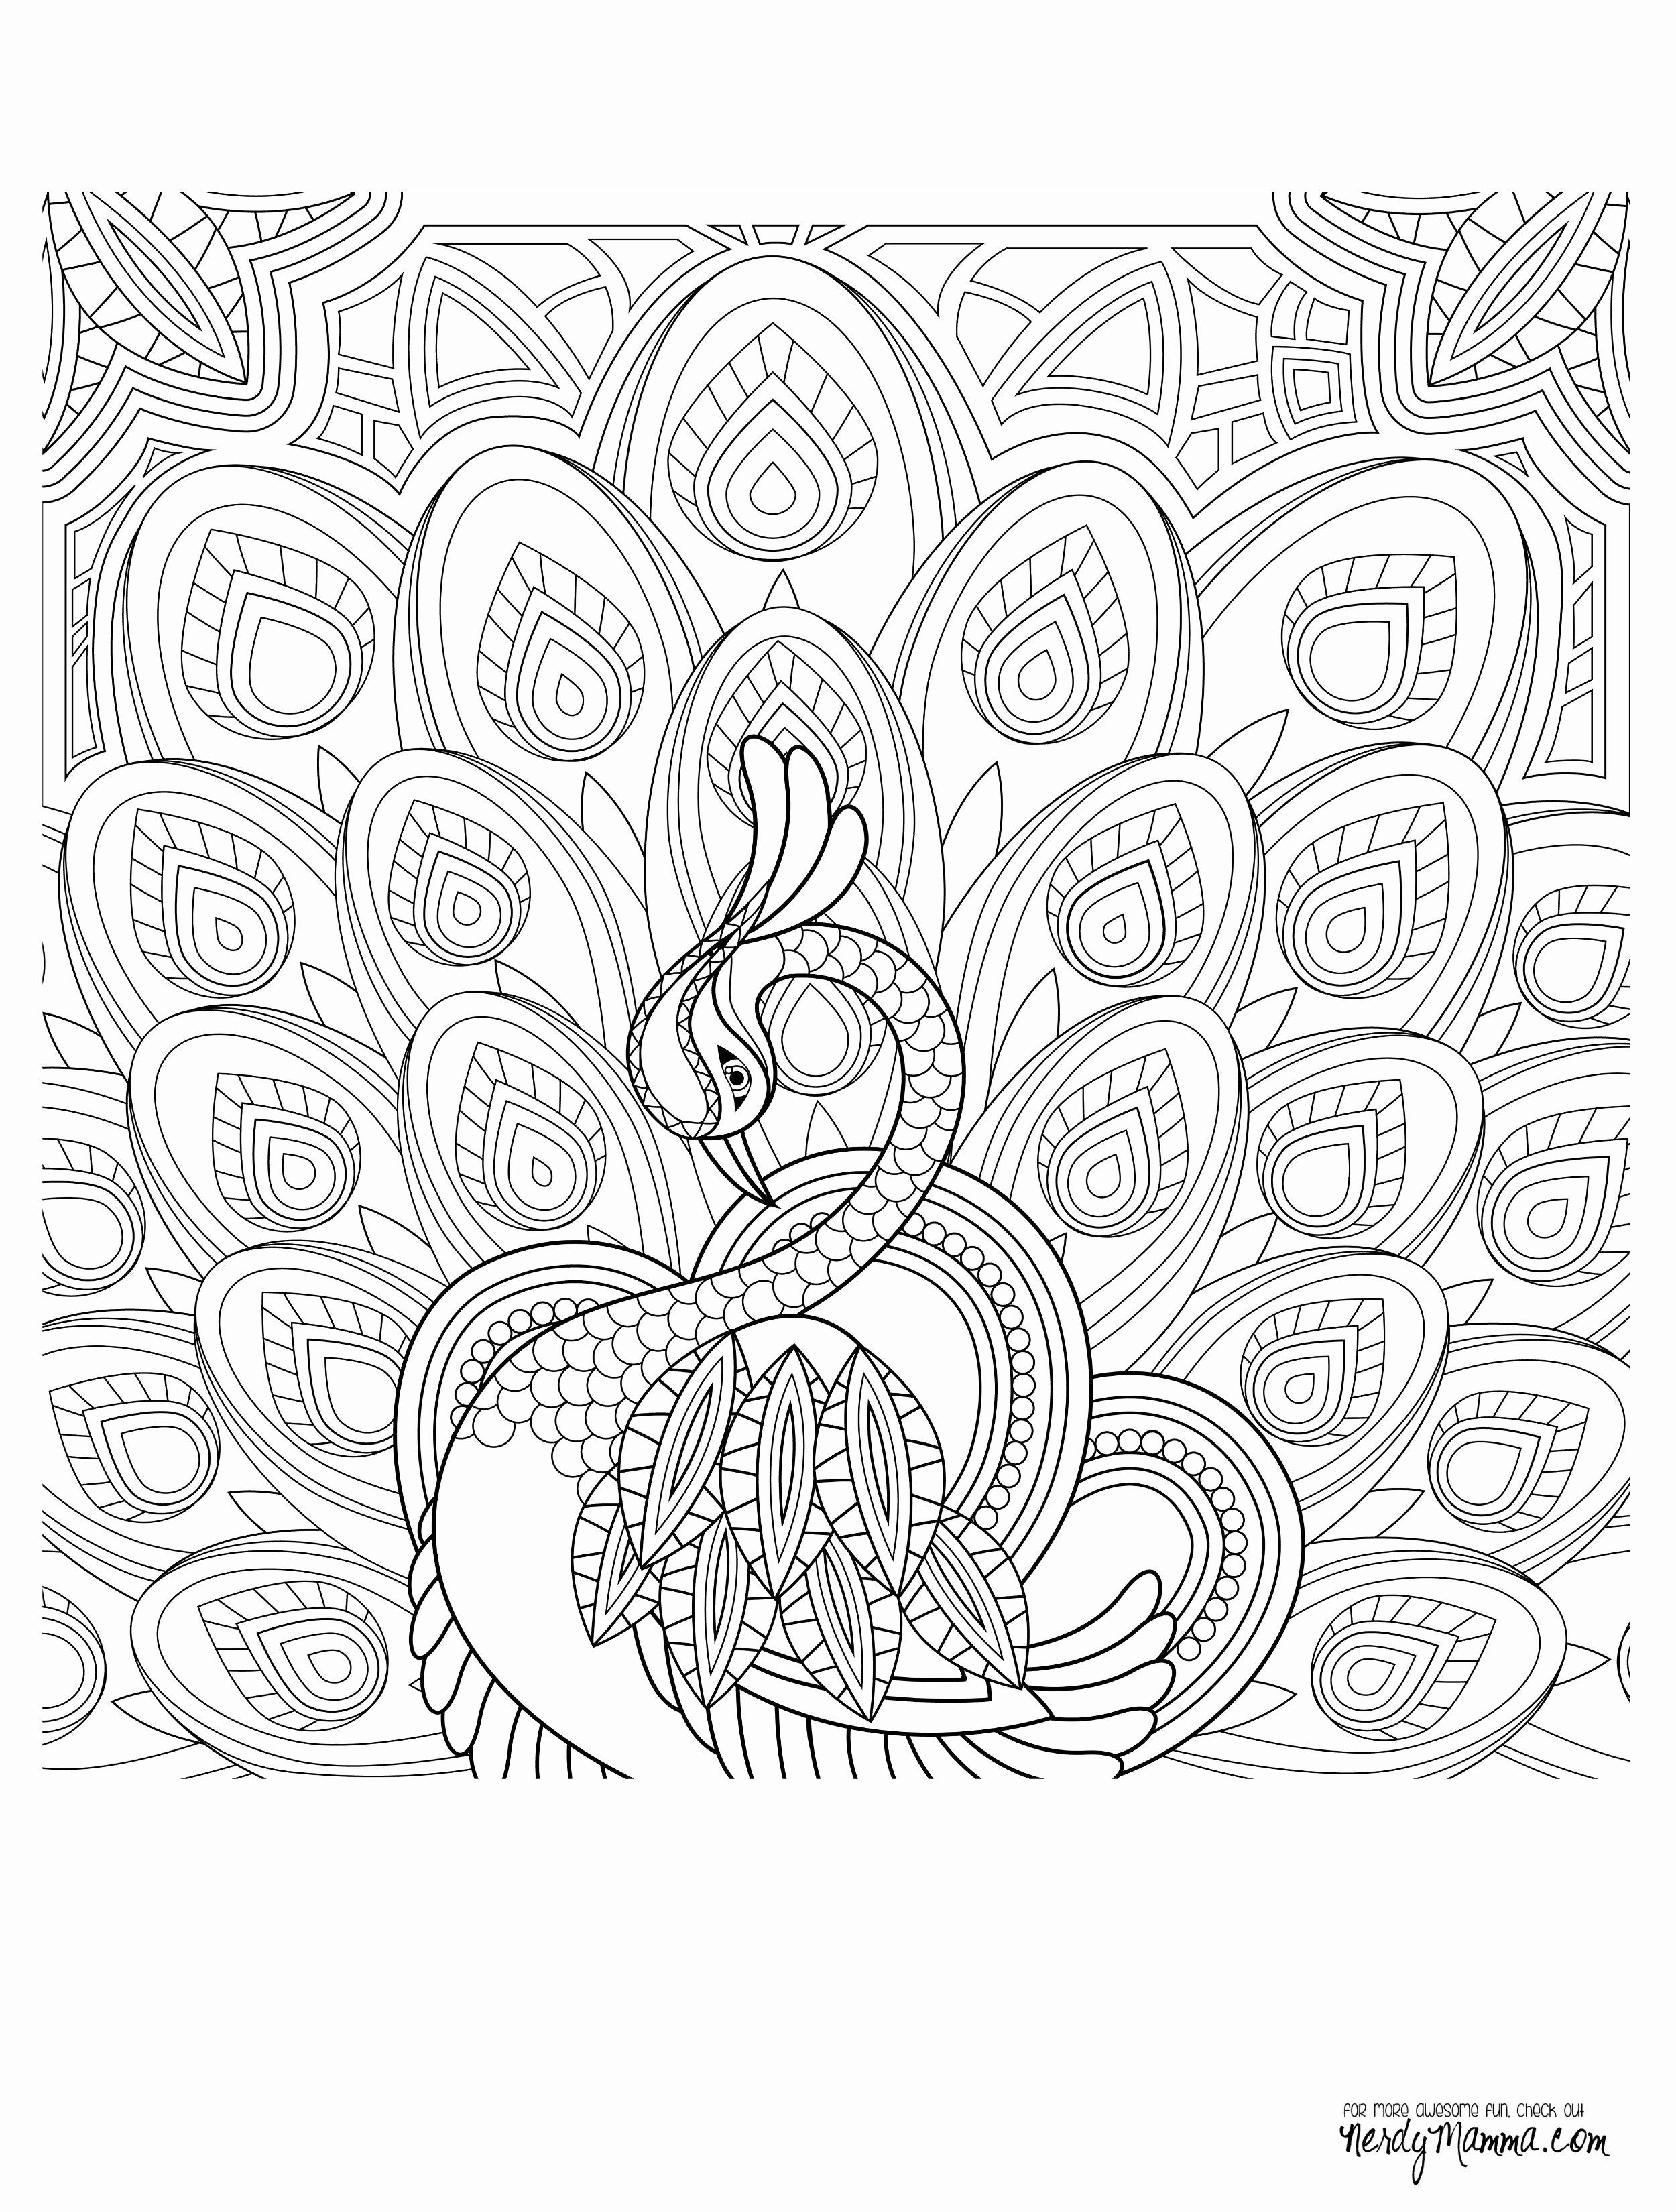 coloring pages for teenagers printable free Download-Free Printable Coloring Pages For Adults Best Awesome Coloring Page For Adult Od Kids Simple Floral Heart With 16-r